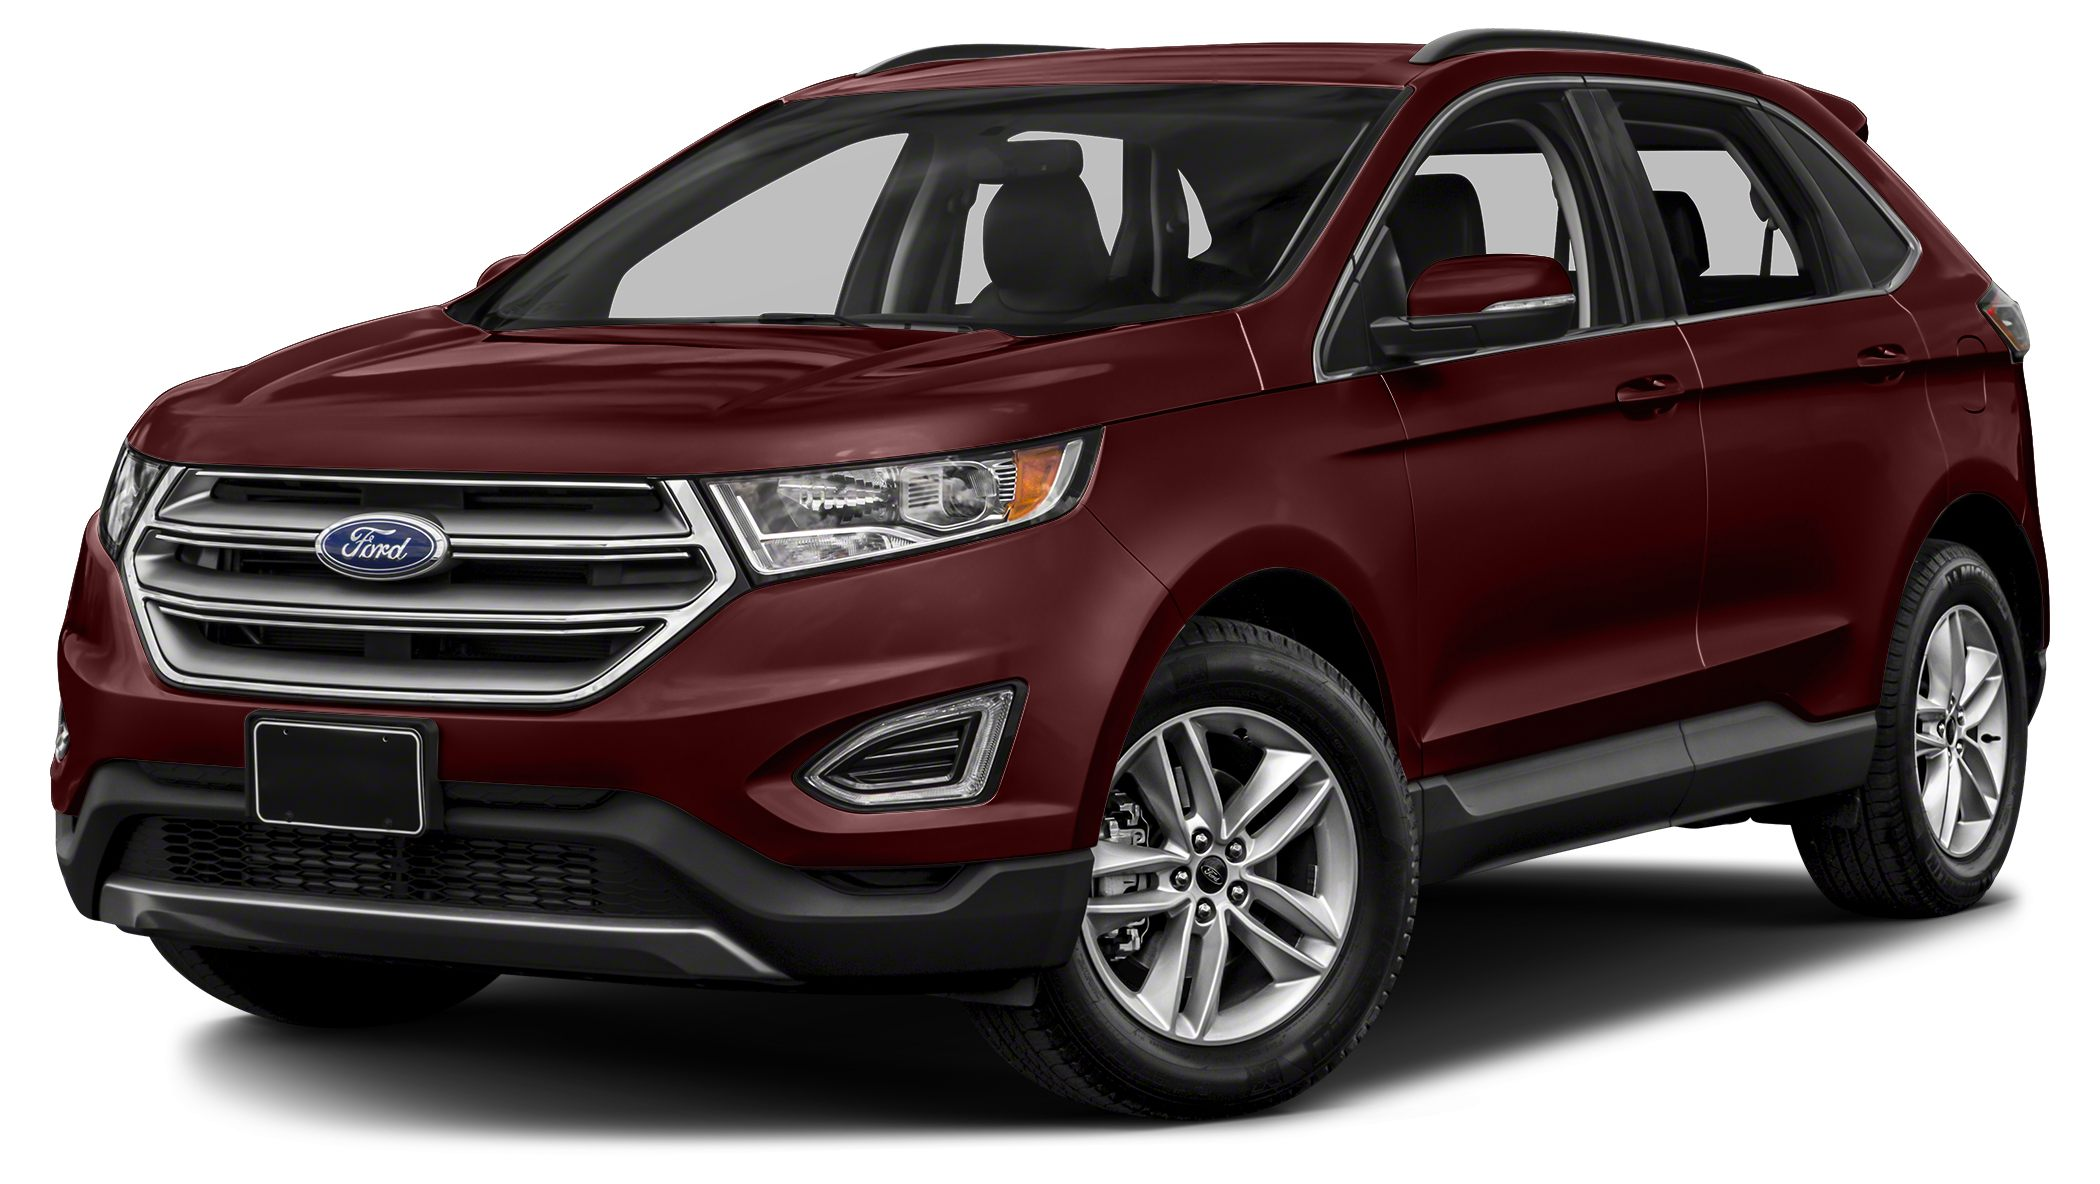 2016 Ford Edge SEL The all new 2016 Ford Edge is taking crossovers to a whole new level The SE S